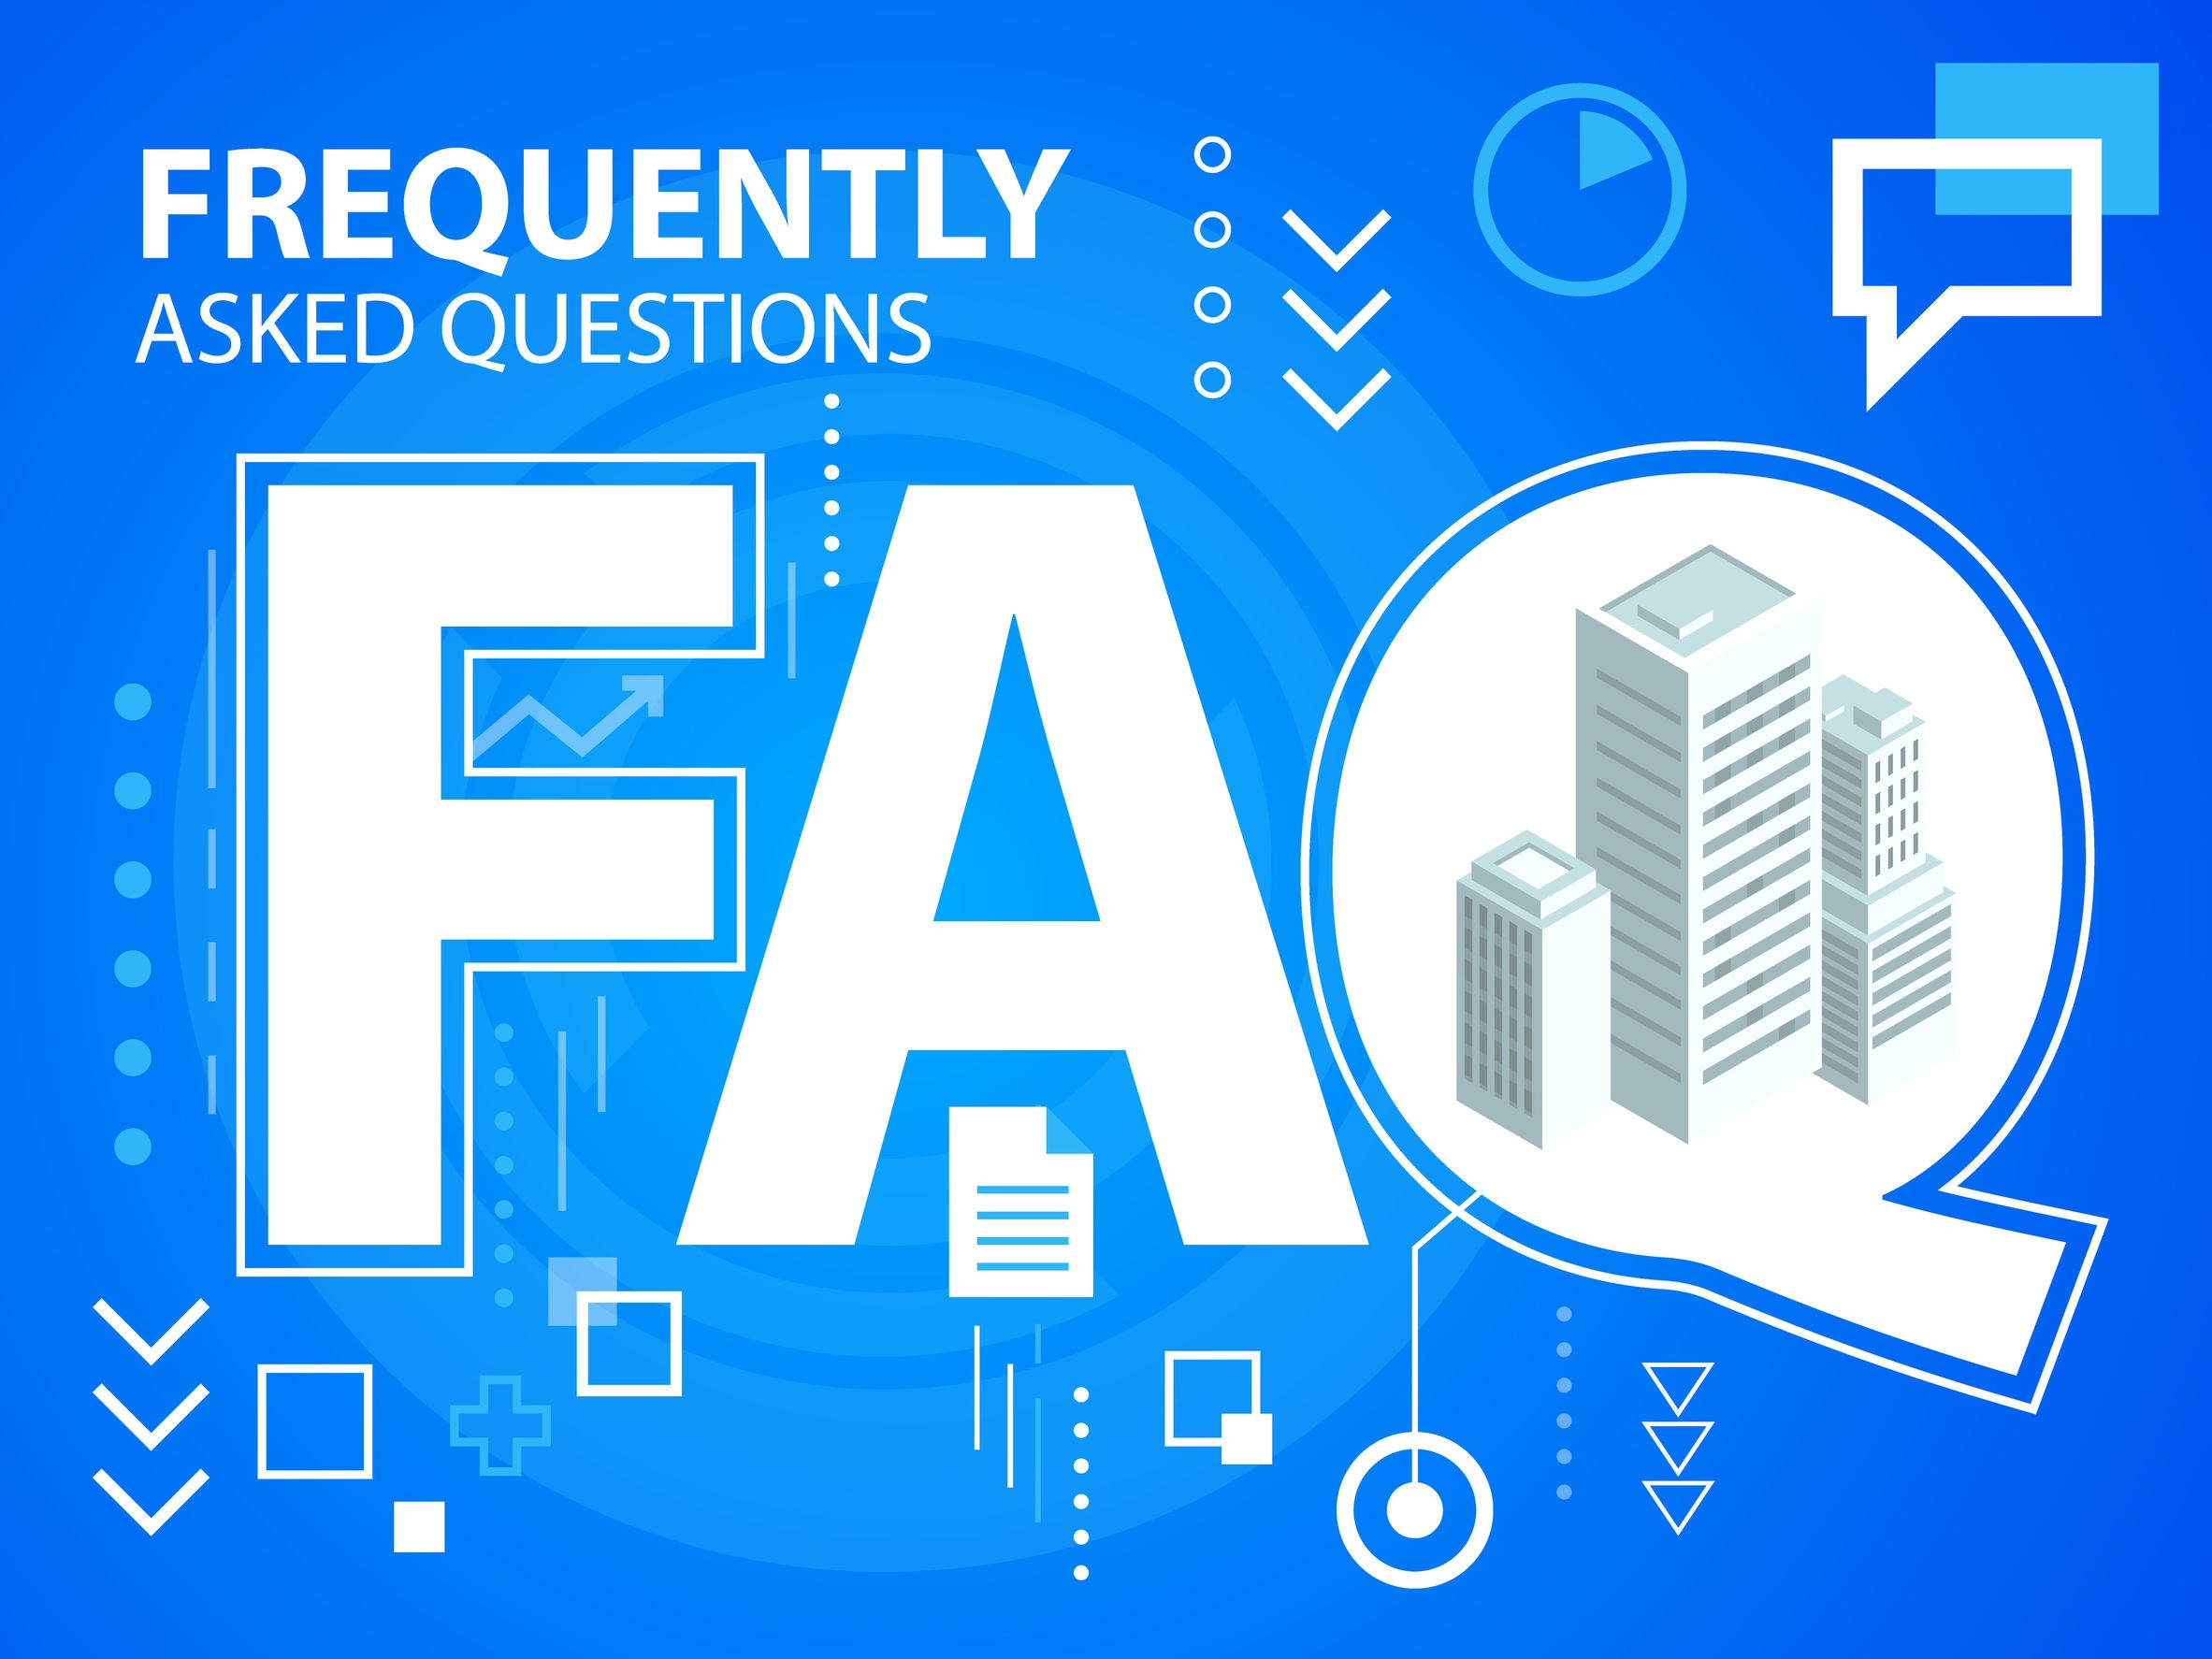 Vector bright illustration faq and buildings on blue background